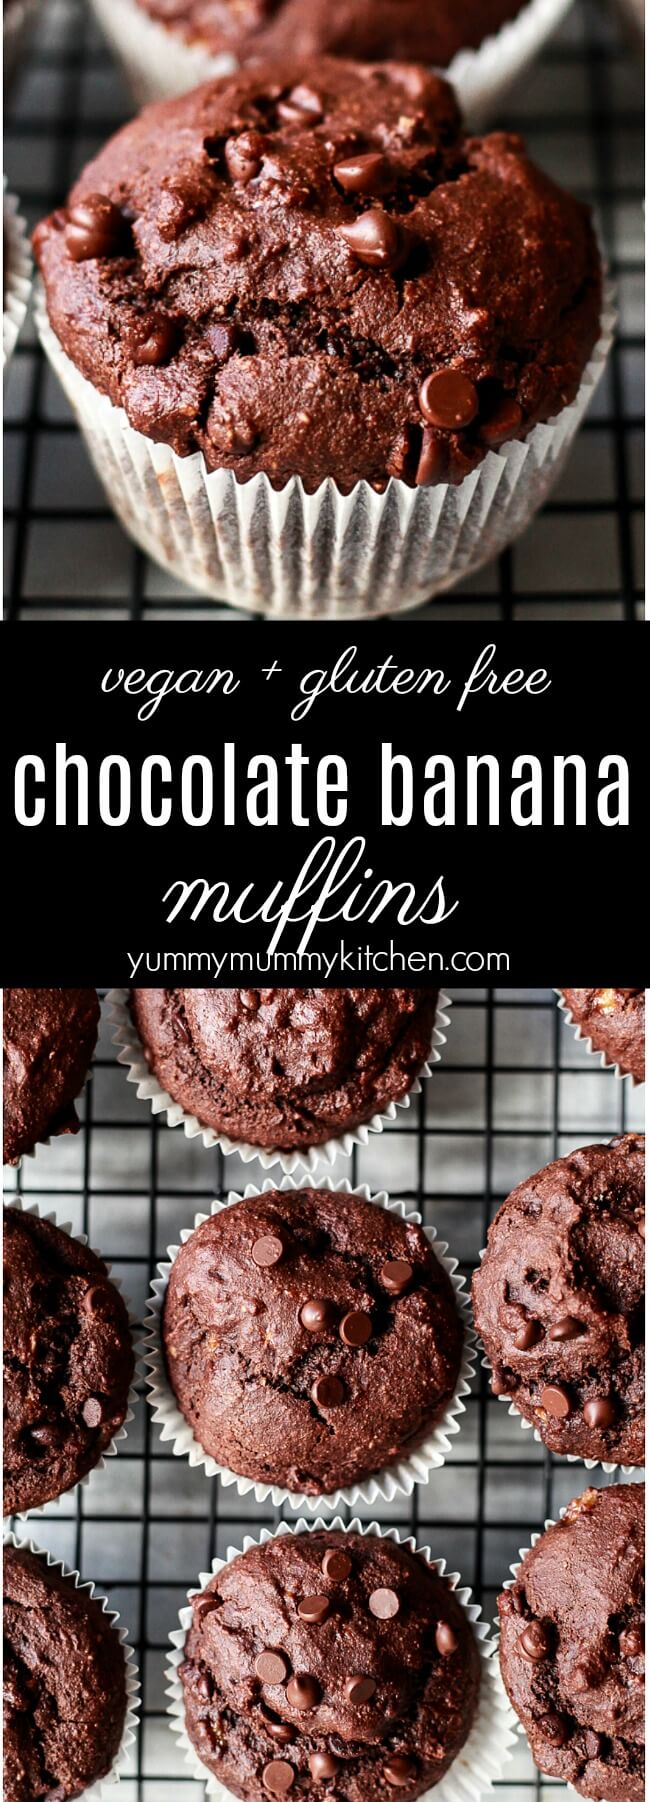 The best vegan gluten free chocolate banana muffins made with healthier ingredients like almond flour and oat flour. These easy chocolate muffins are sweetened naturally with bananas and maple syrup. Chocolate banana muffins make a delicious breakfast, brunch, after school snack, or dessert.